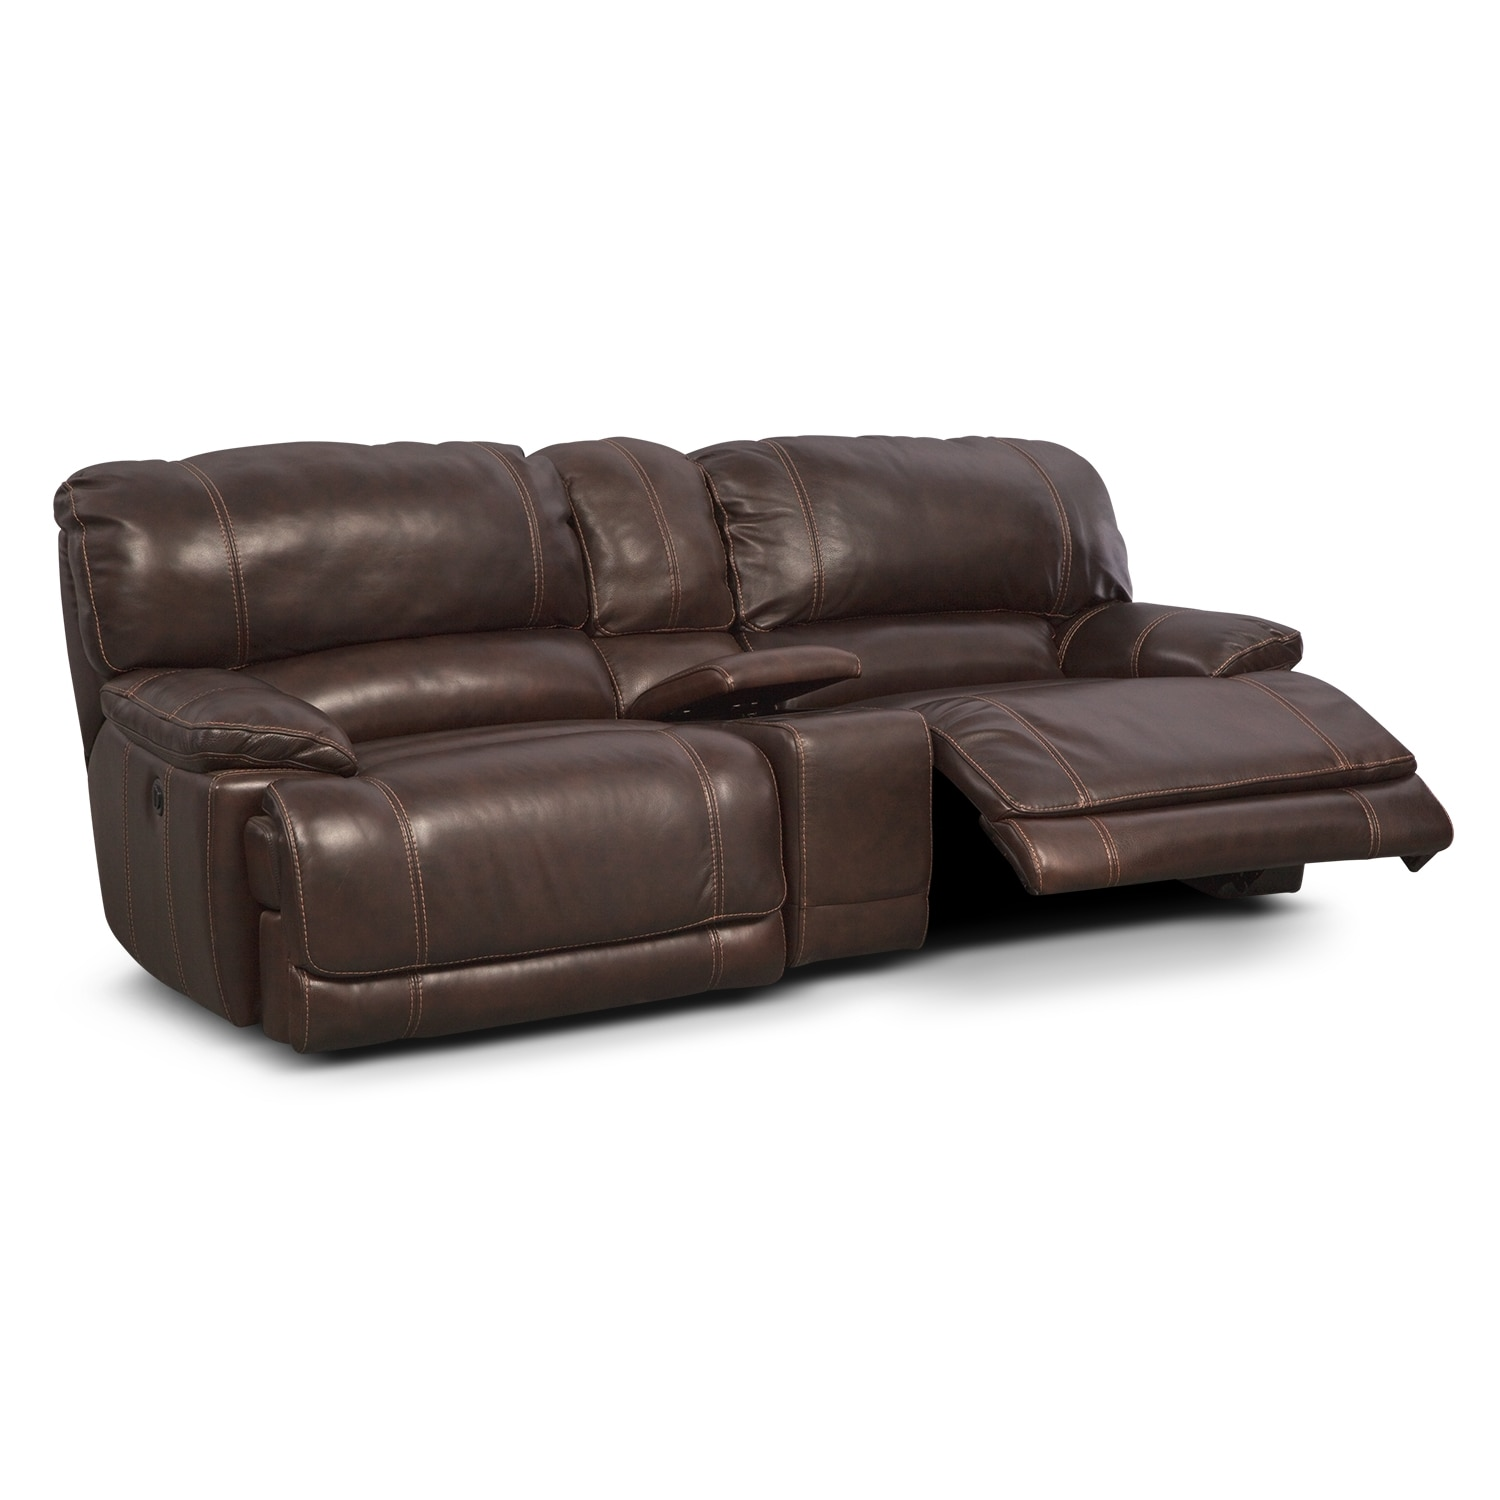 Clinton Brown Leather Power Reclining Sofa With Console